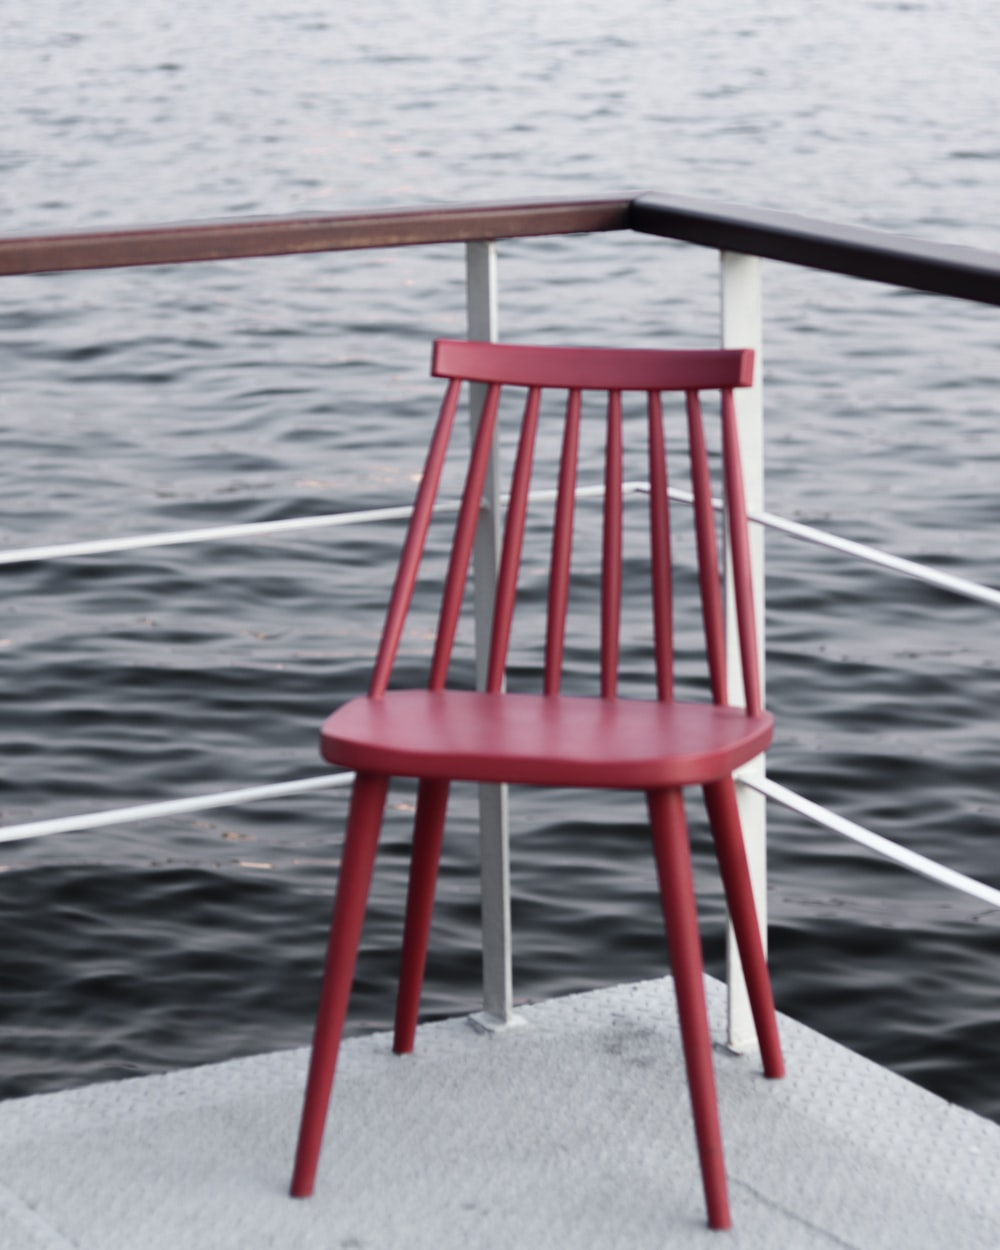 red wooden chair on gray concrete floor